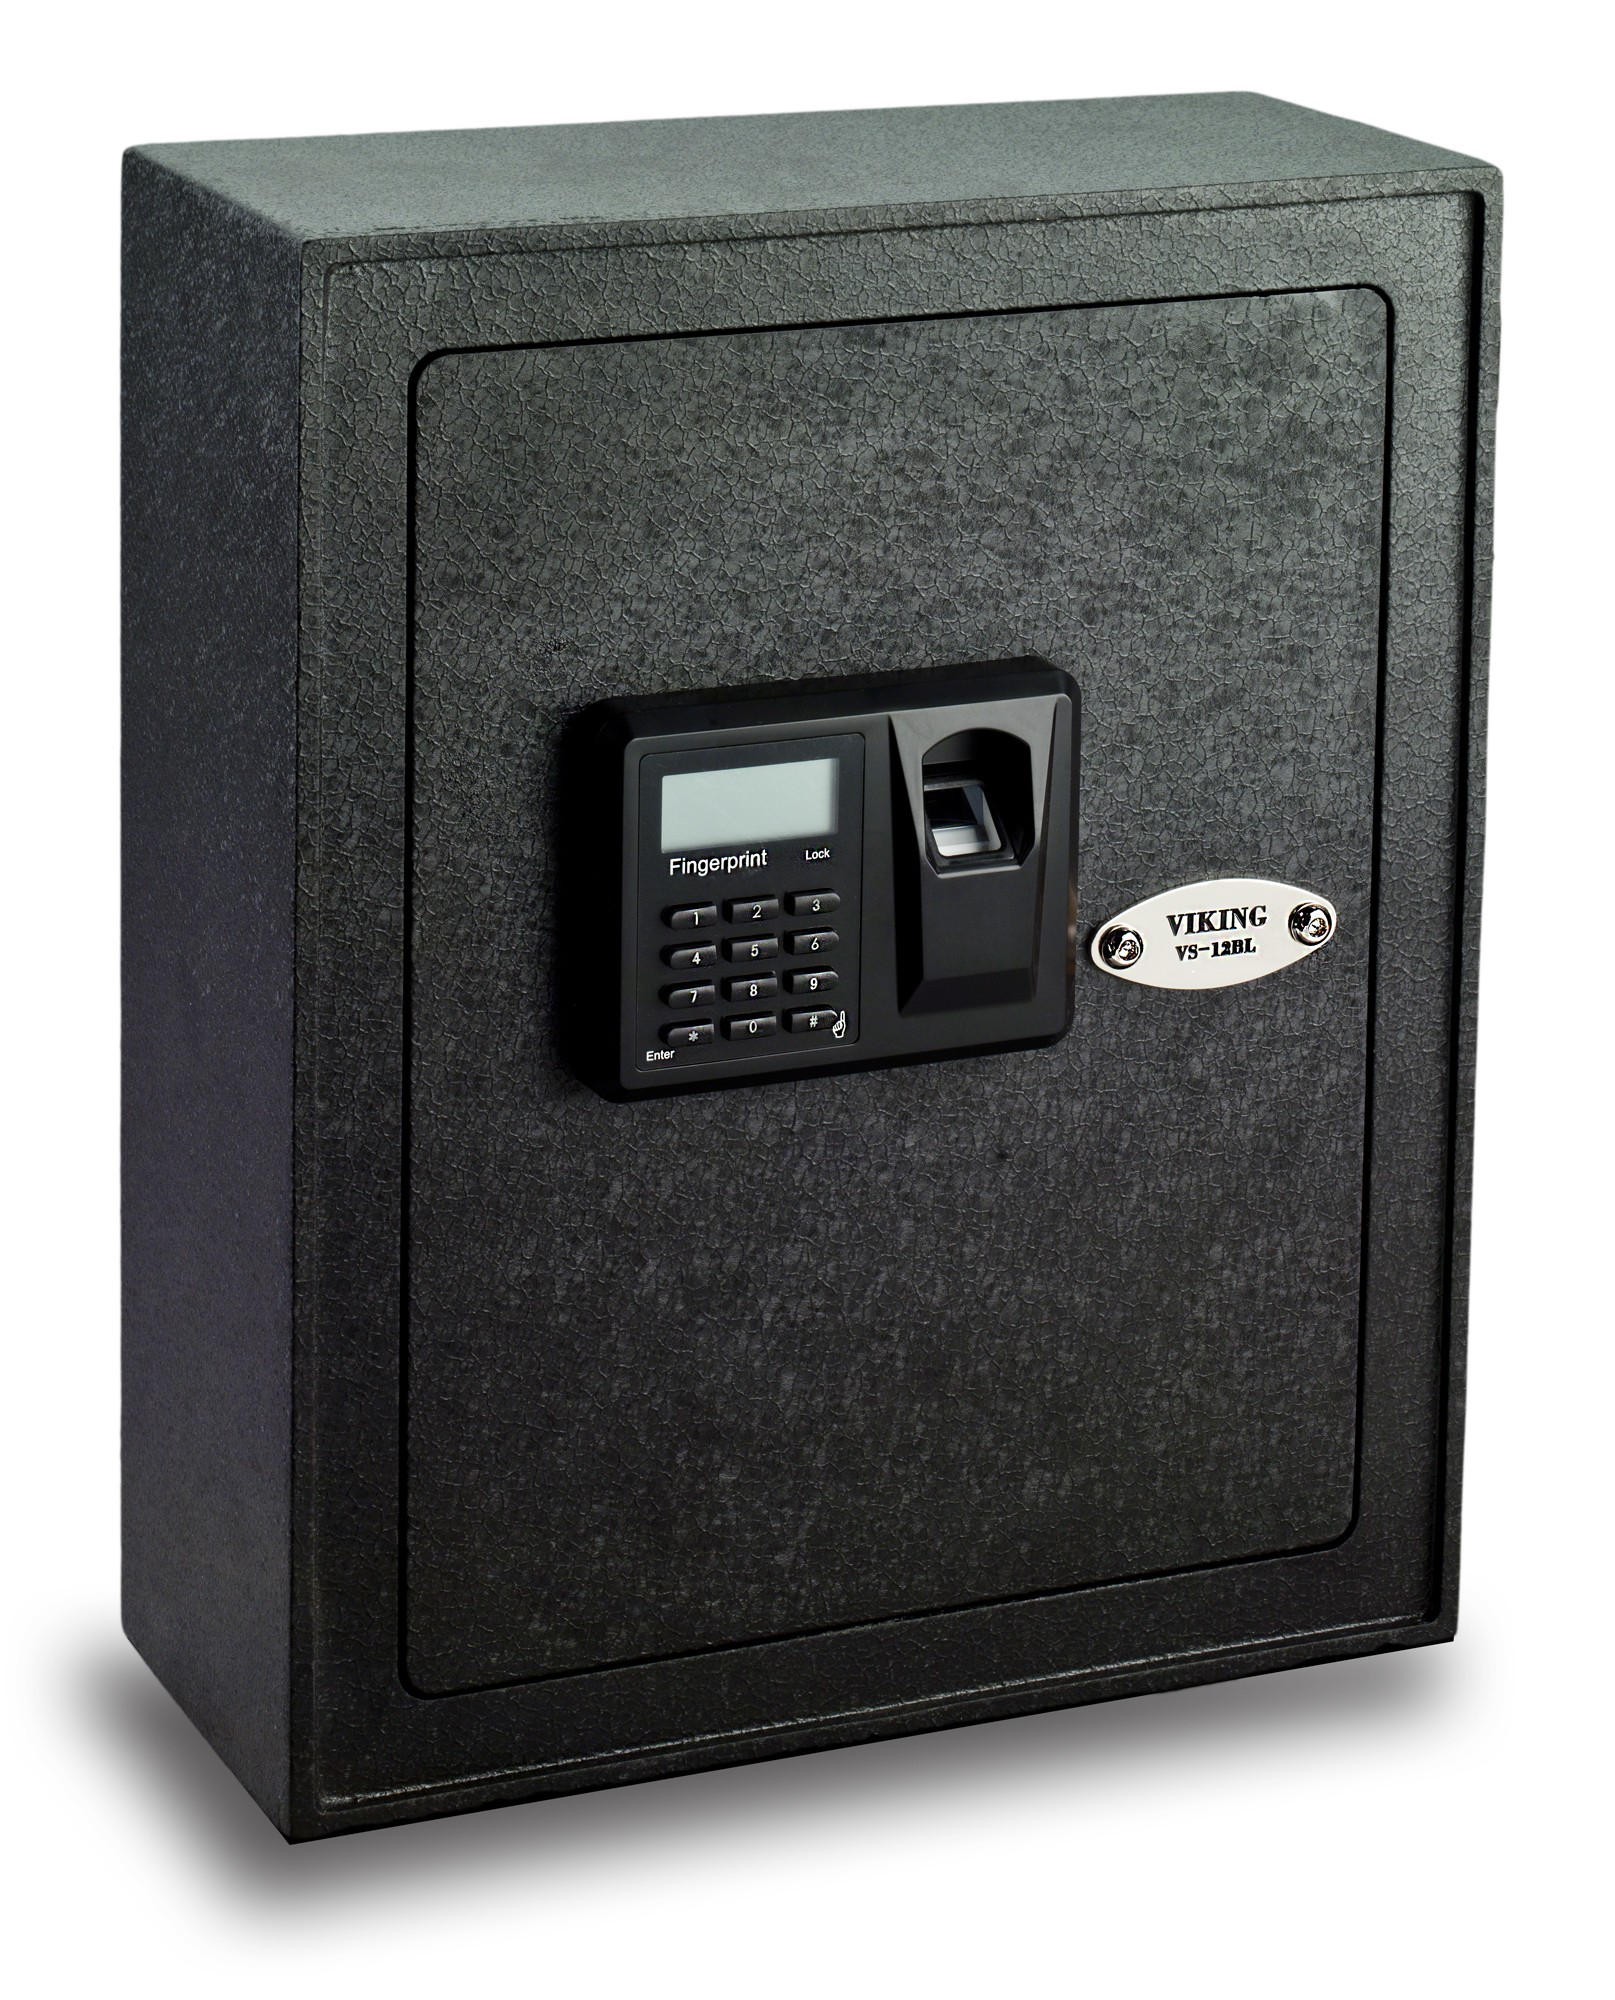 Viking Security Safe VS-12BL Small Wall Biometric Fingerprint LCD Keypad Safe